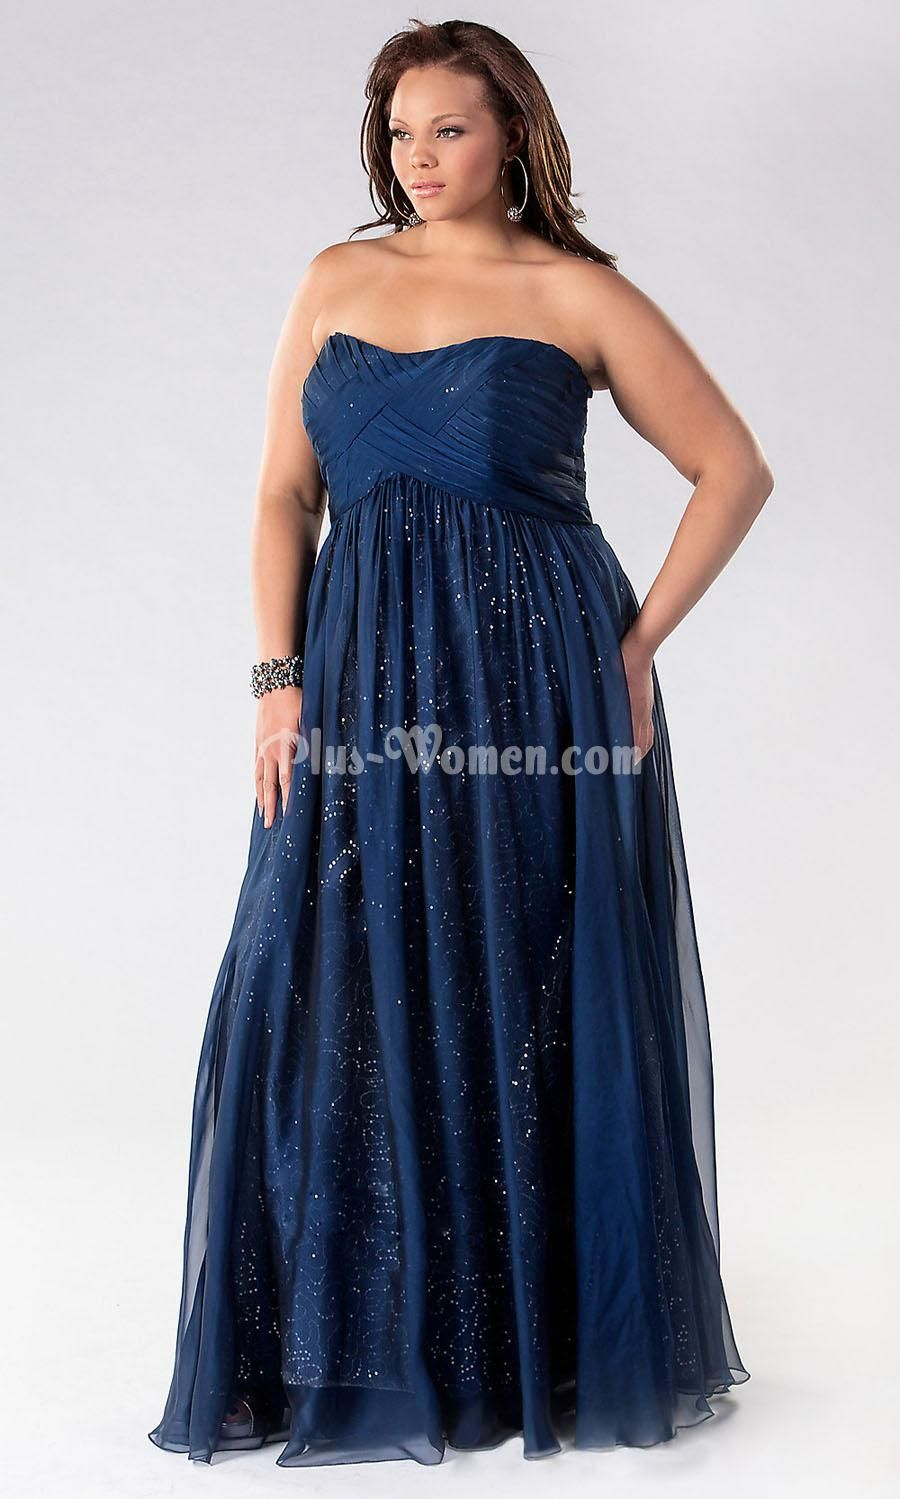 Navy Blue Prom Dresses for Plus Size Girls